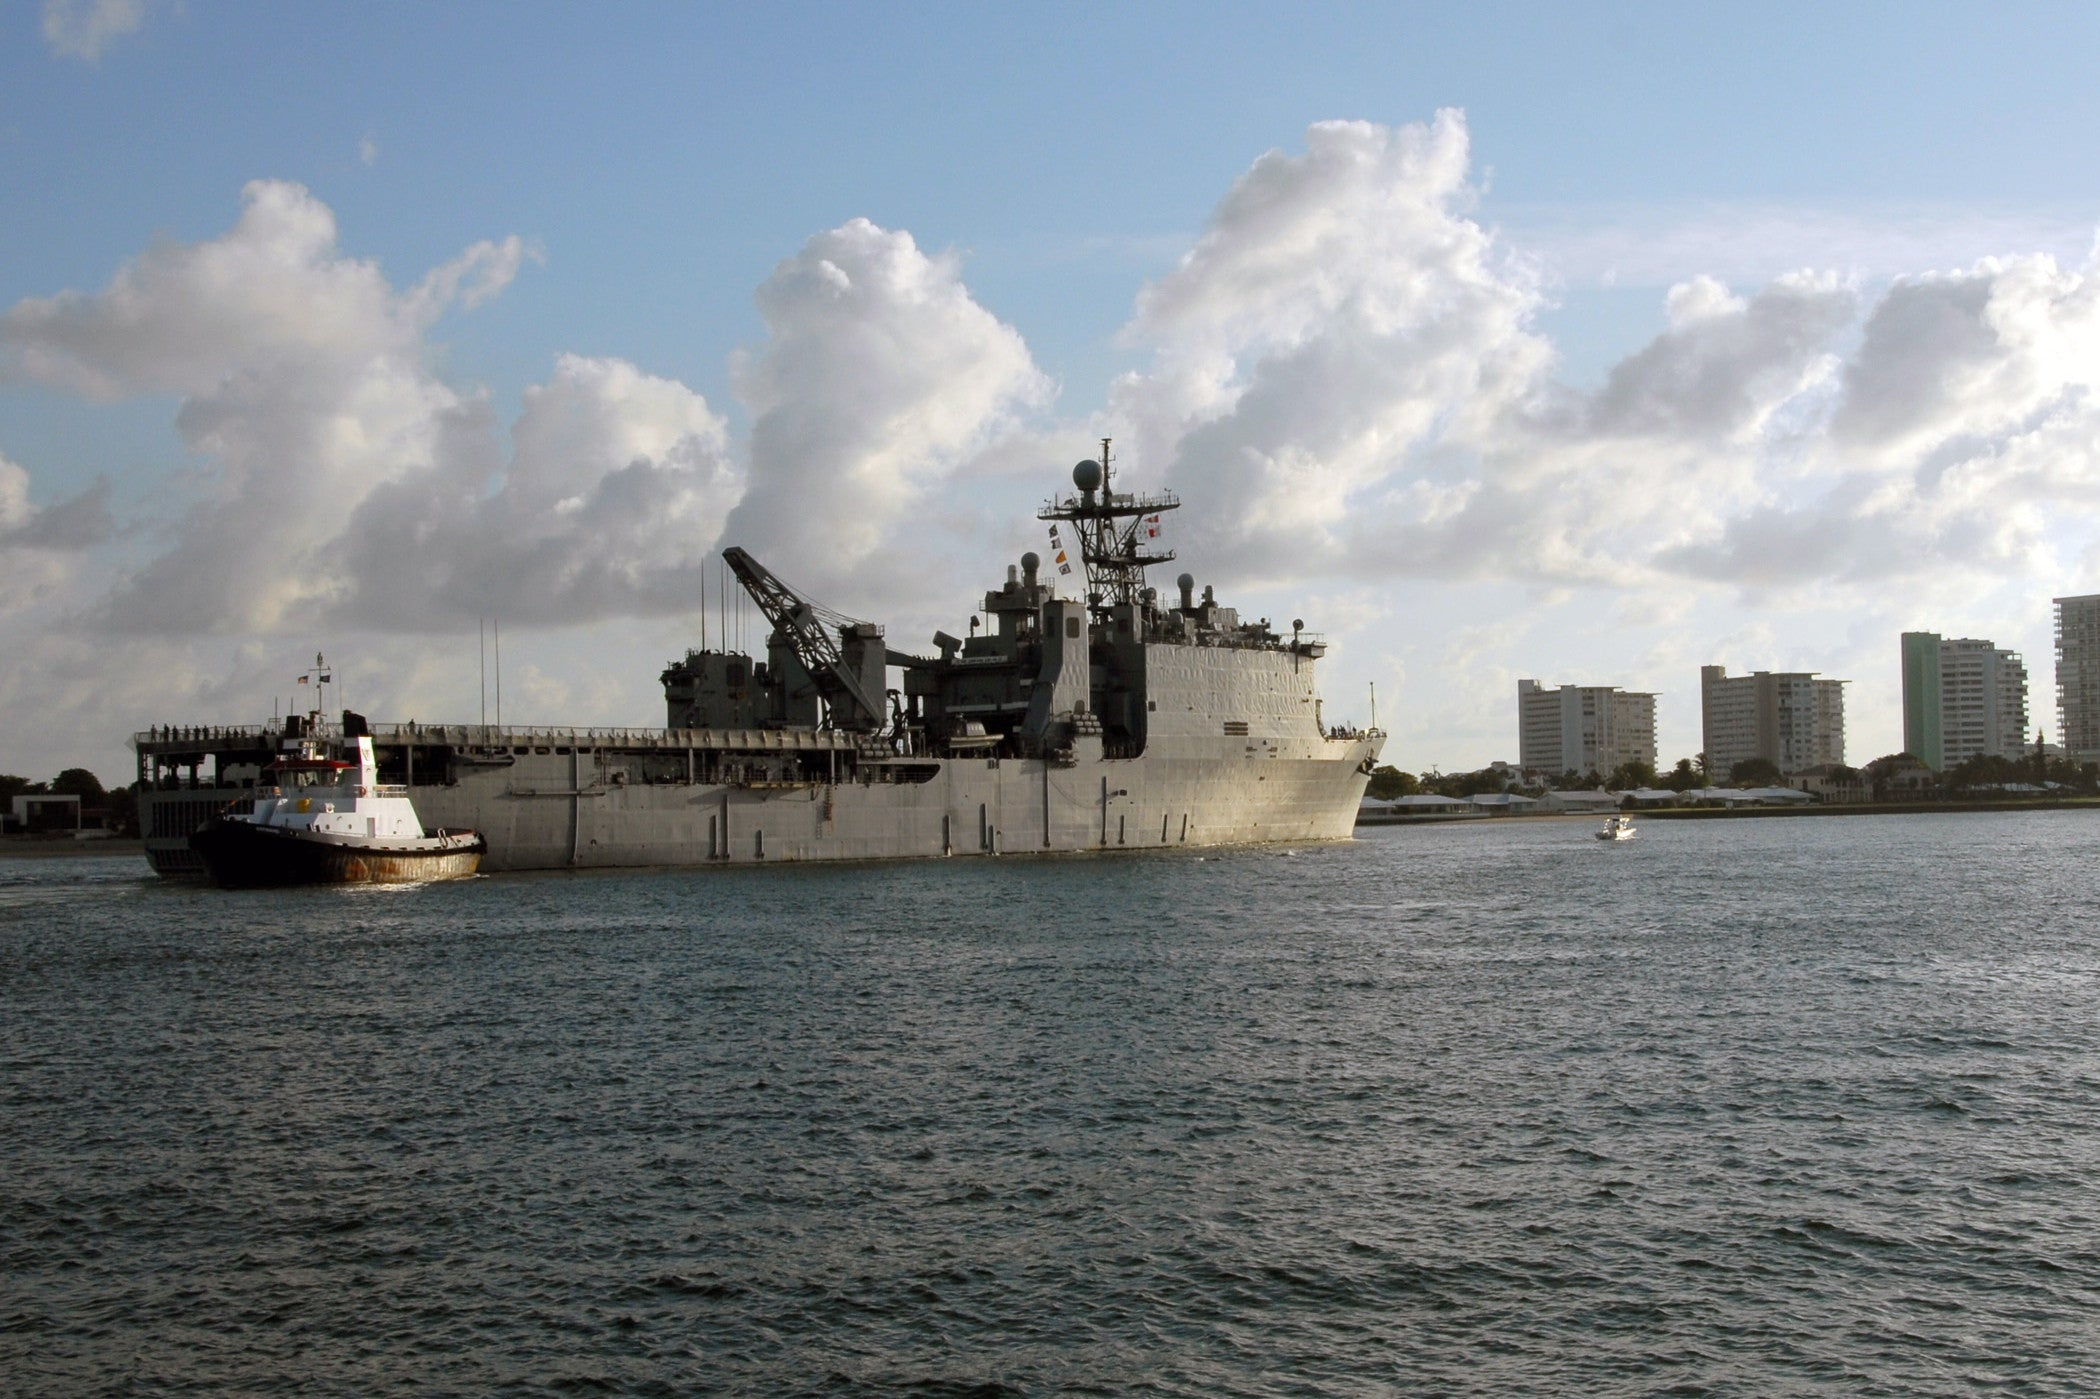 "USS Crommelin FFG-37 PEARL HARBOR (Oct. 20, 2008) - 4"" x 6"" Photograph"